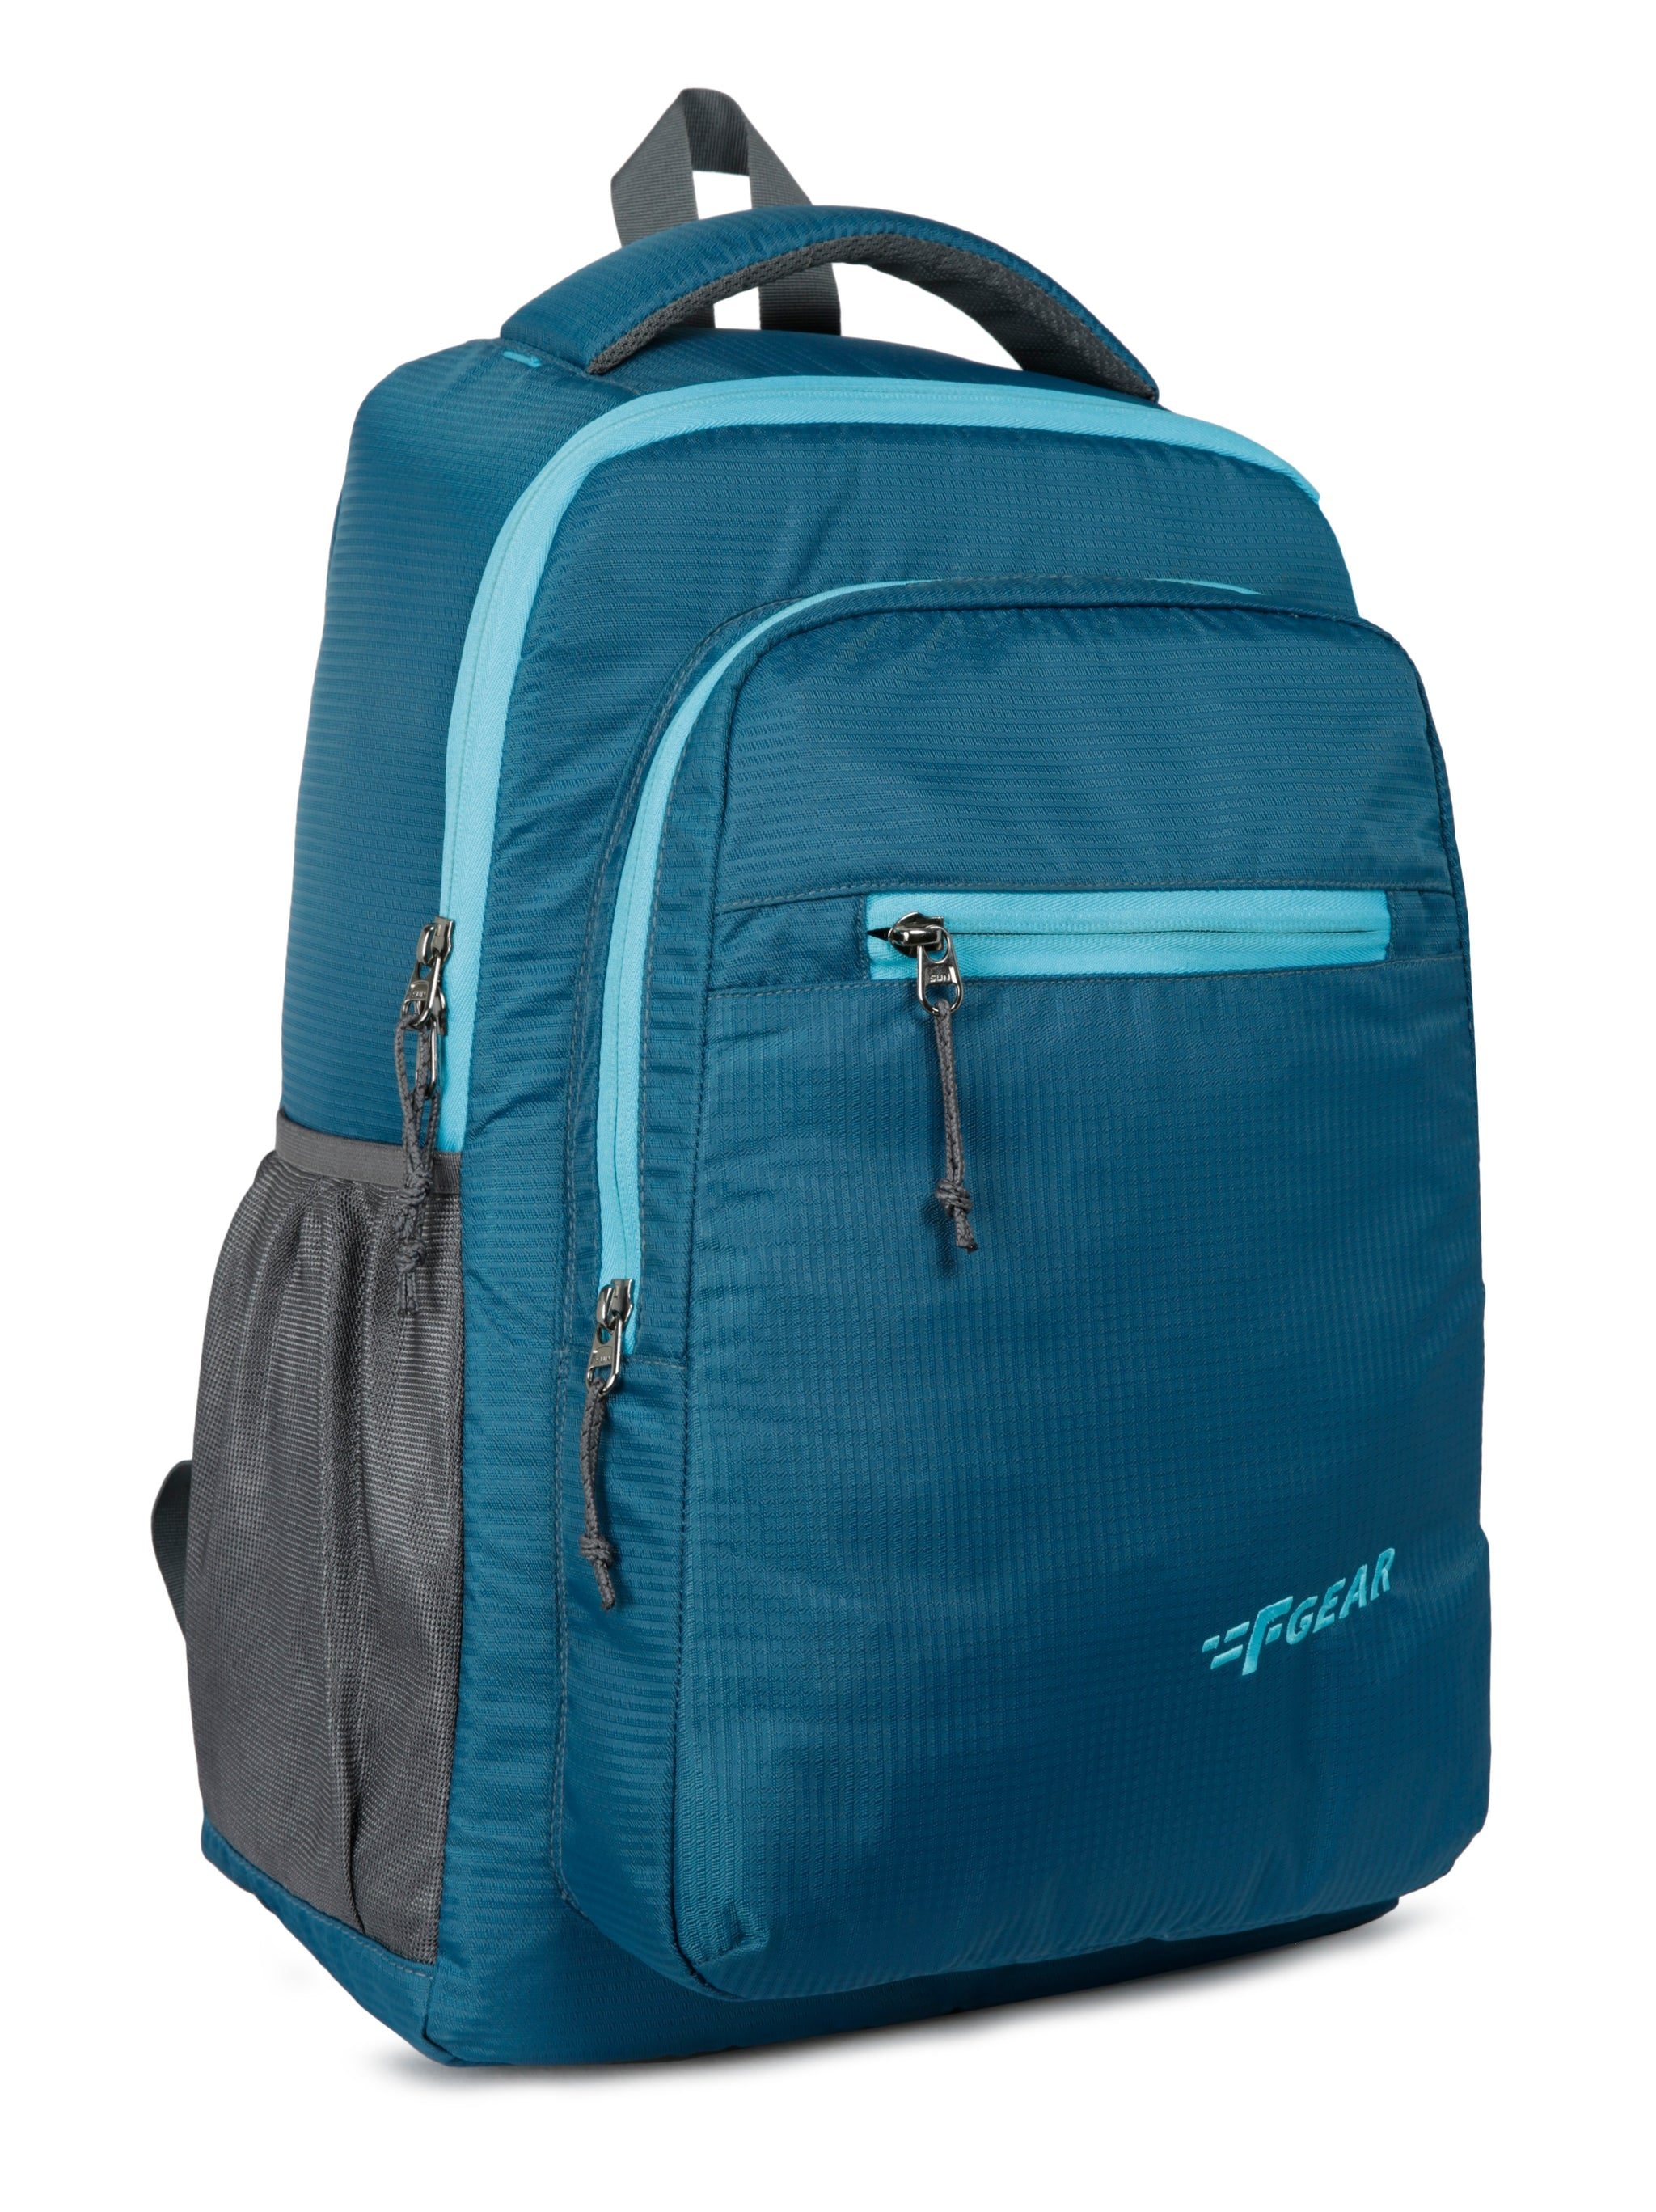 F Gear Murphy Doby 27 Ltrs Peacock Blue Casual Backpack (3163)